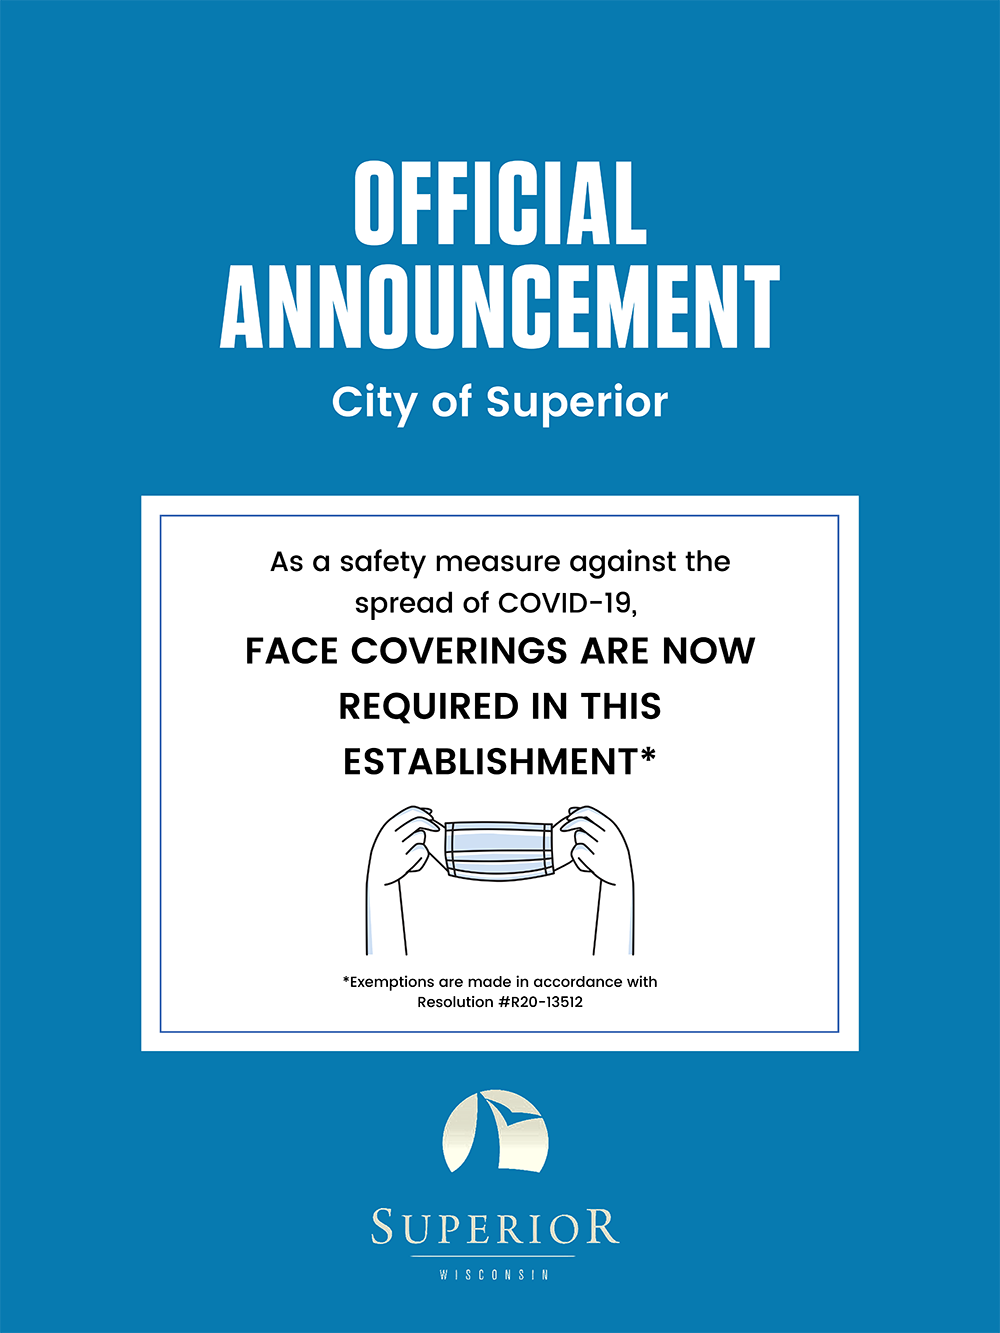 COVID-19: Face coverings are required in this establishment